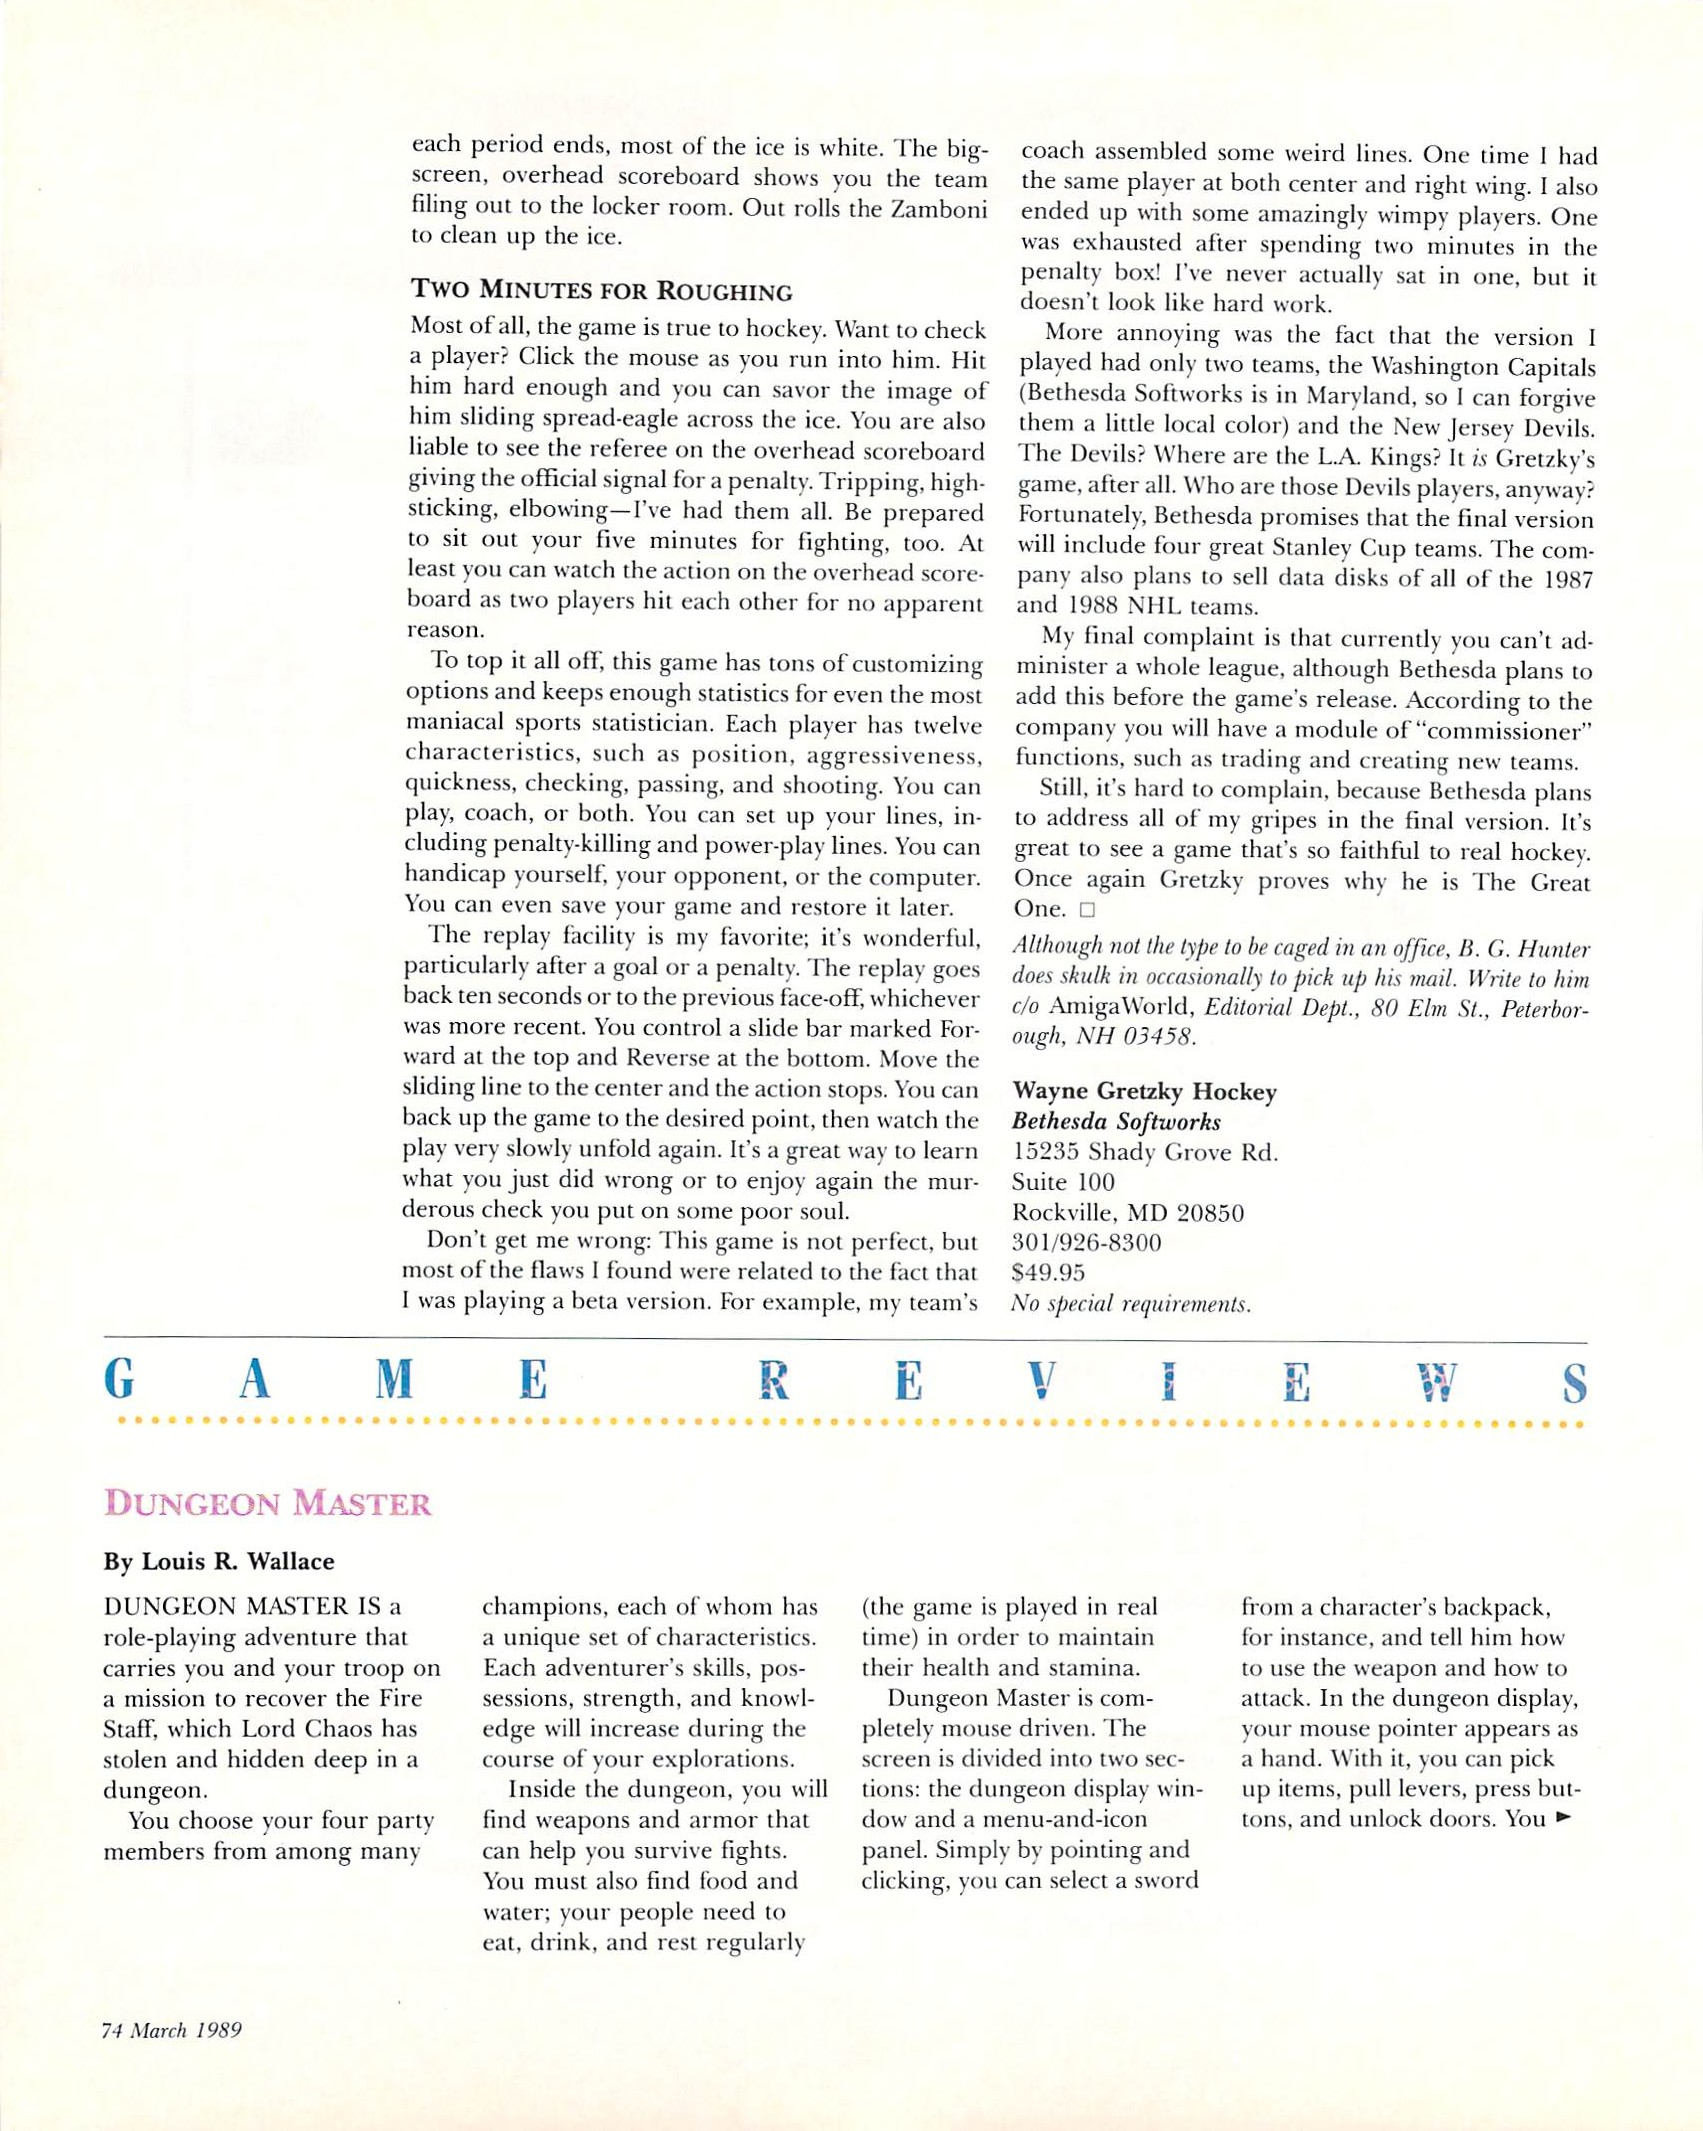 Dungeon Master for Amiga Review published in American magazine 'Amiga World', Vol 5 No 3 March 1989, Page 74